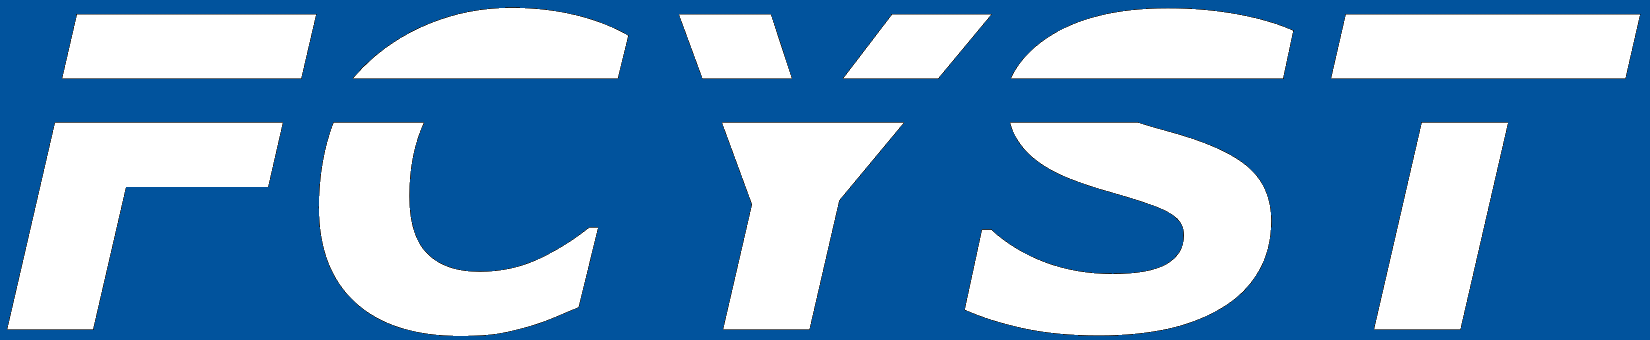 logo_fcyst_white.png